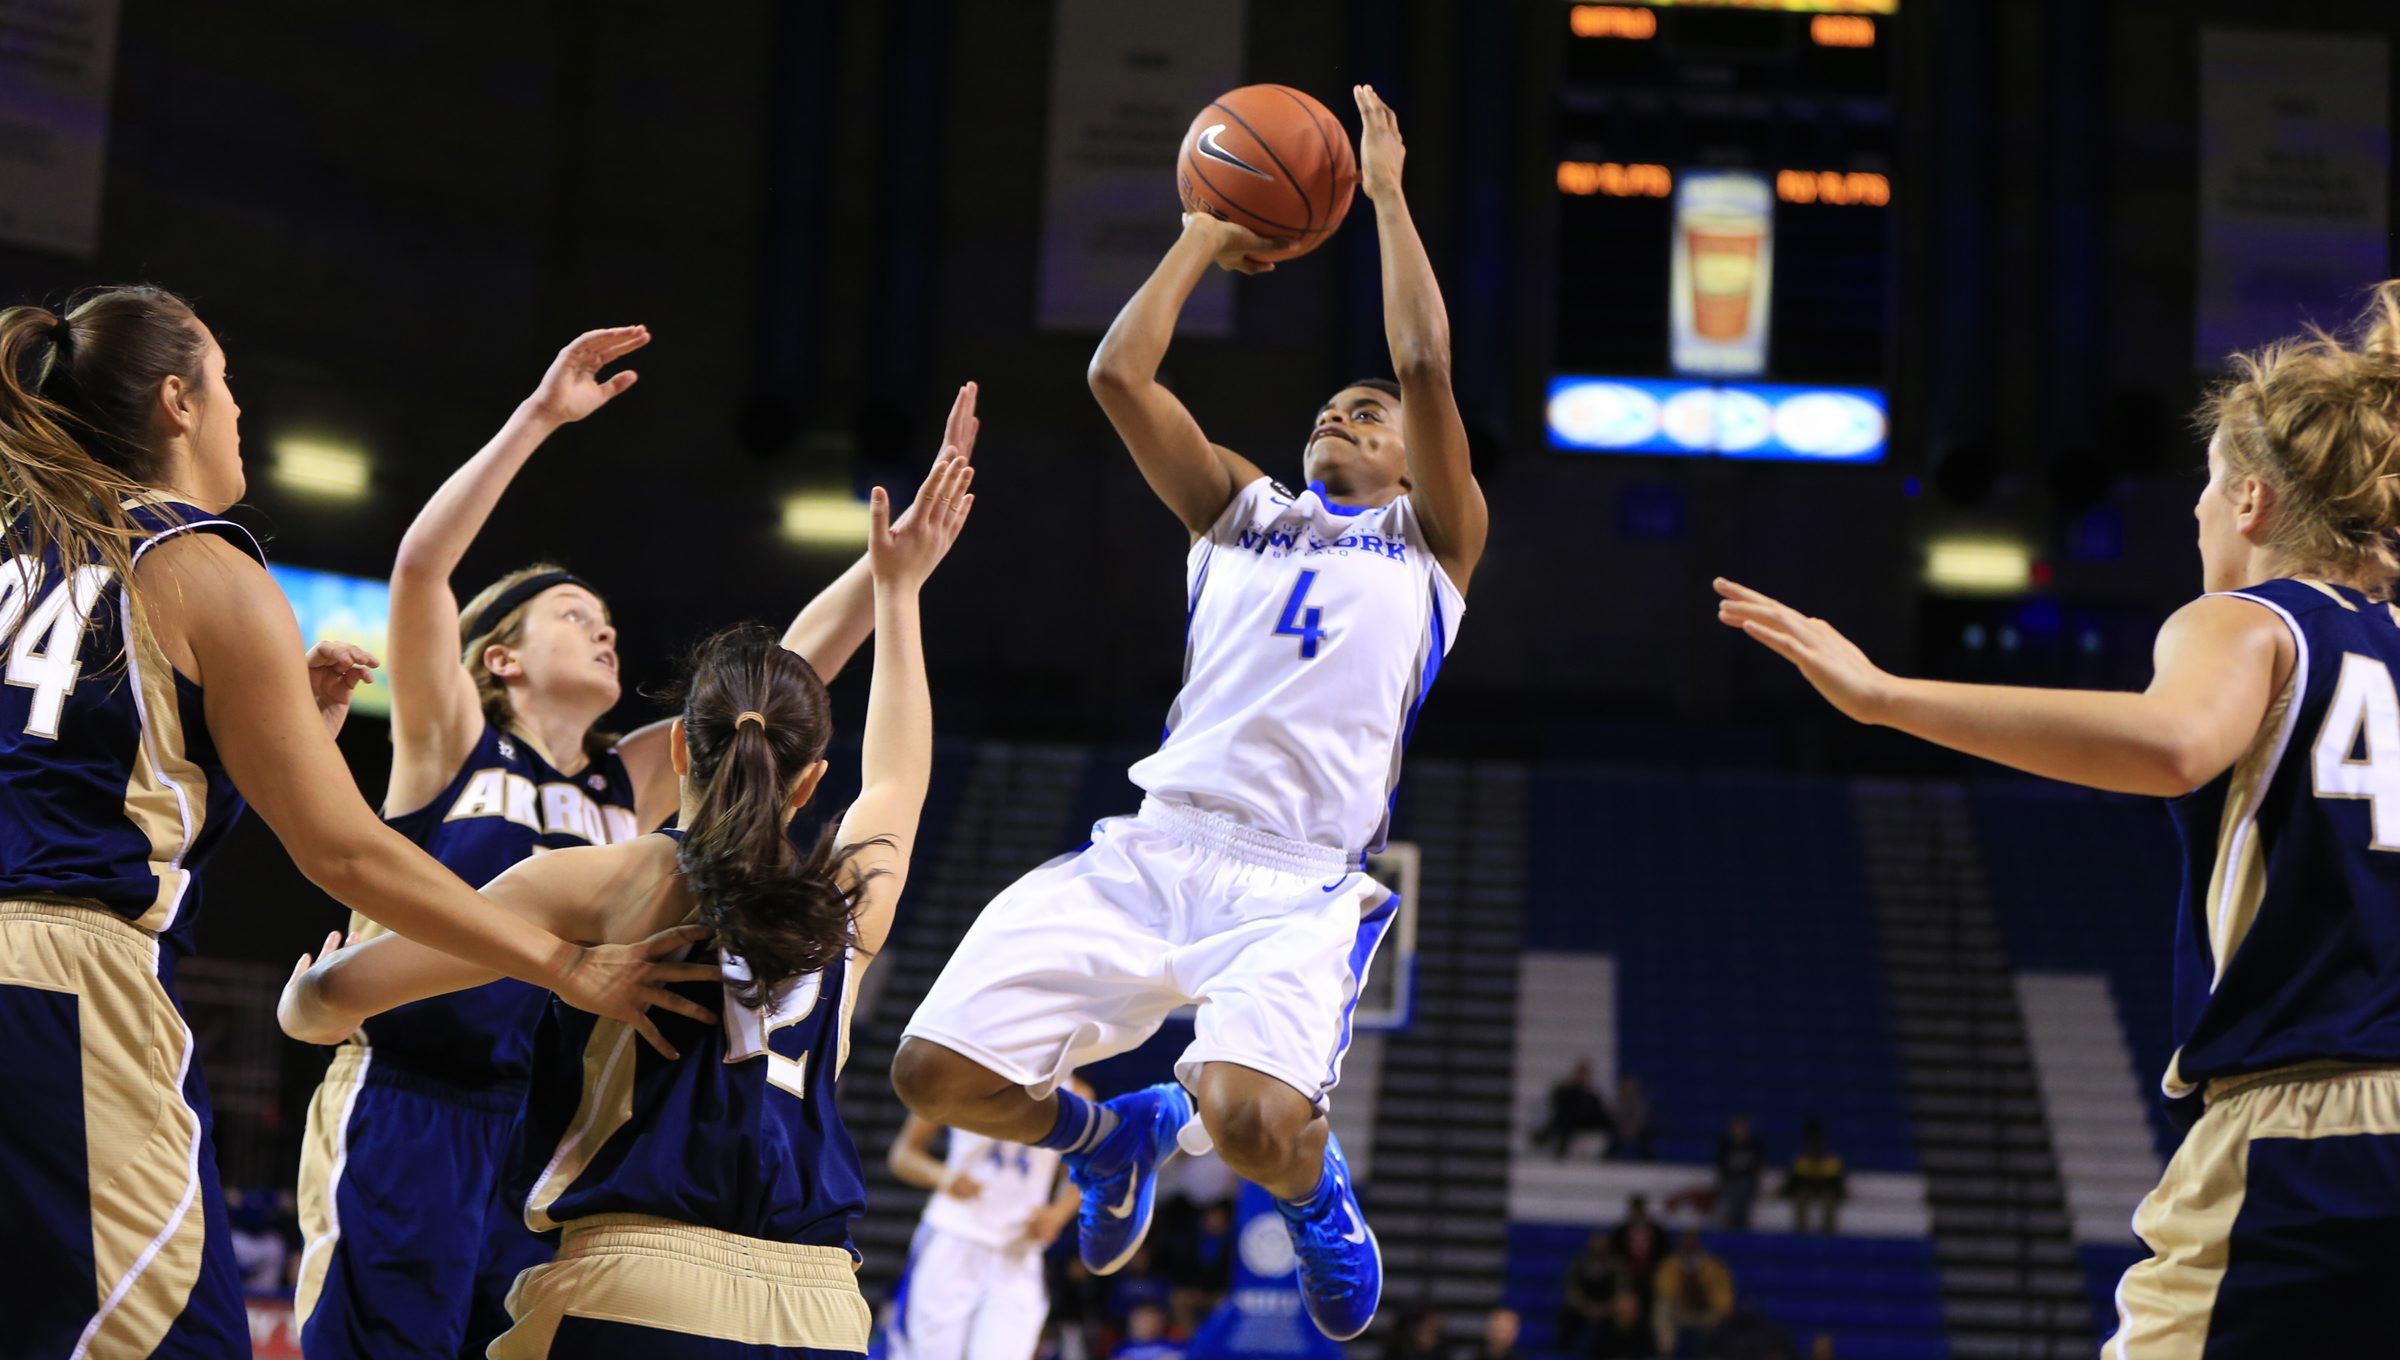 university at Buffalo's Joanna Smith (4) shoots between Akron players during first half action at Alumni Arena on Saturday, Feb. 28, 2015.(Harry Scull Jr./Buffalo News)